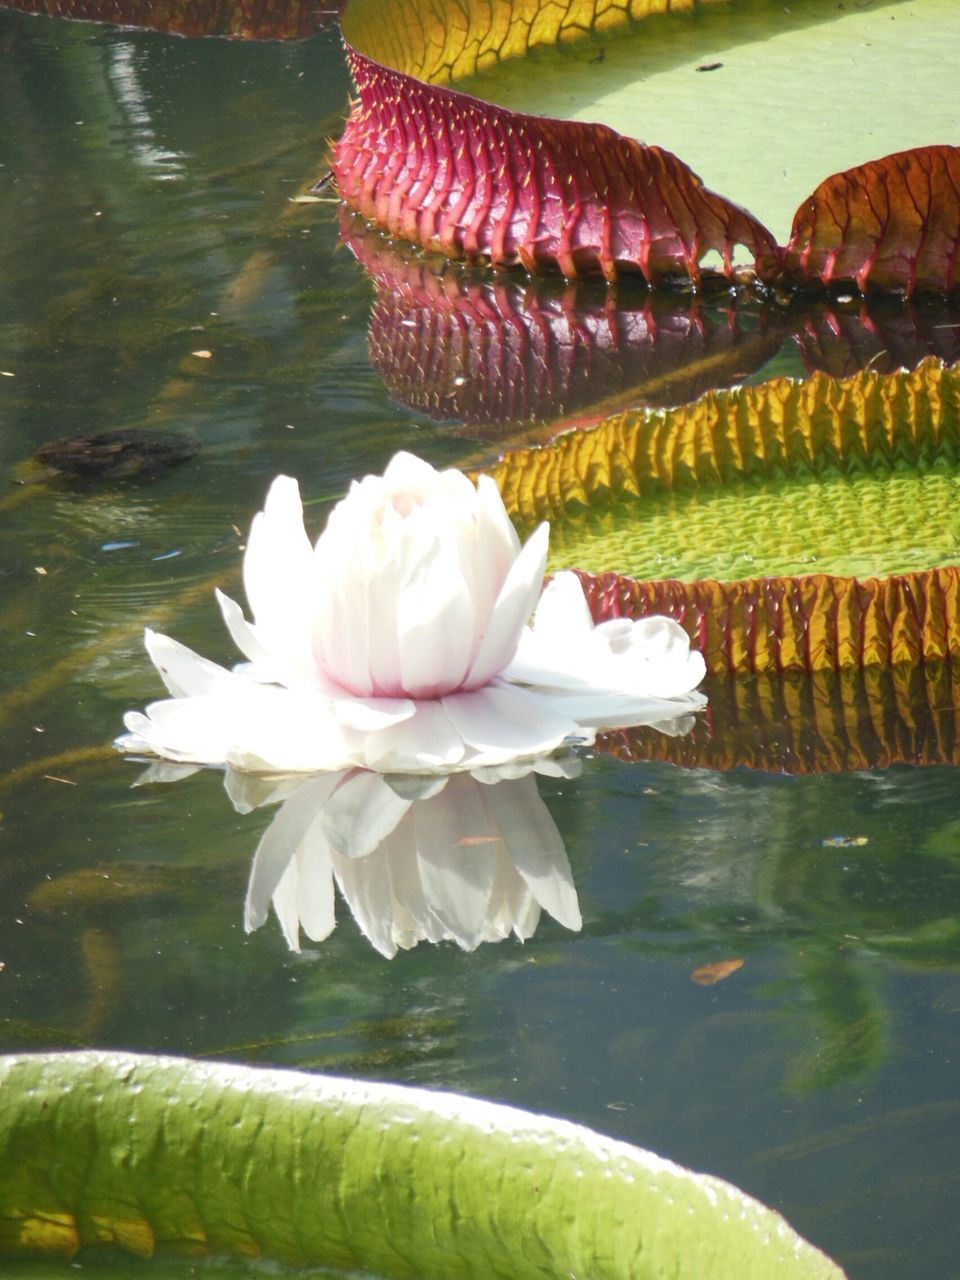 water, flower, beauty in nature, nature, lake, freshness, reflection, no people, fragility, floating on water, petal, waterfront, plant, water lily, outdoors, day, close-up, leaf, lotus water lily, lily pad, animal themes, flower head